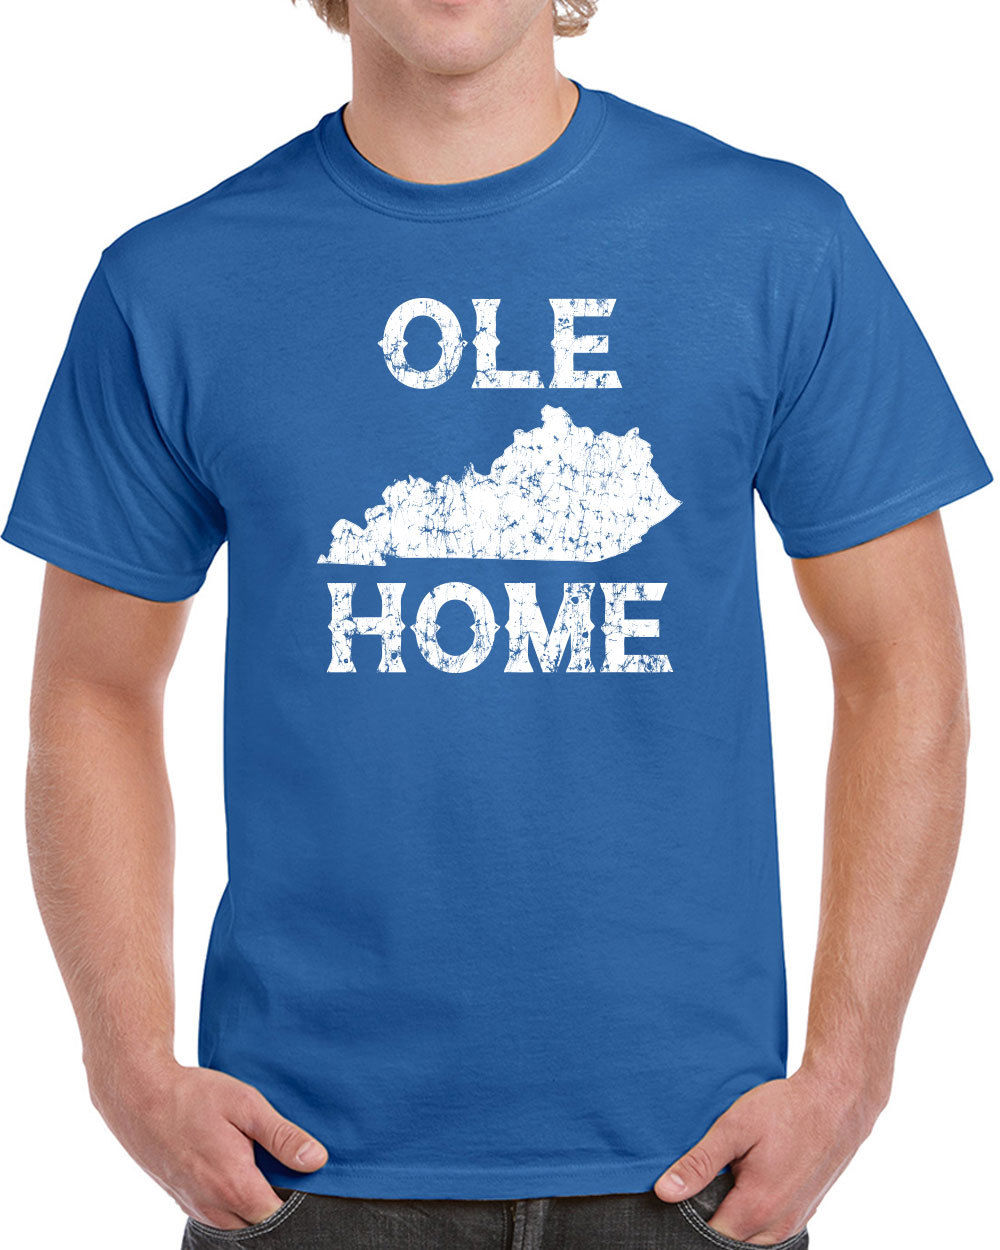 Awesome Print Your Own T Shirt Design At Home Photos - Amazing ...